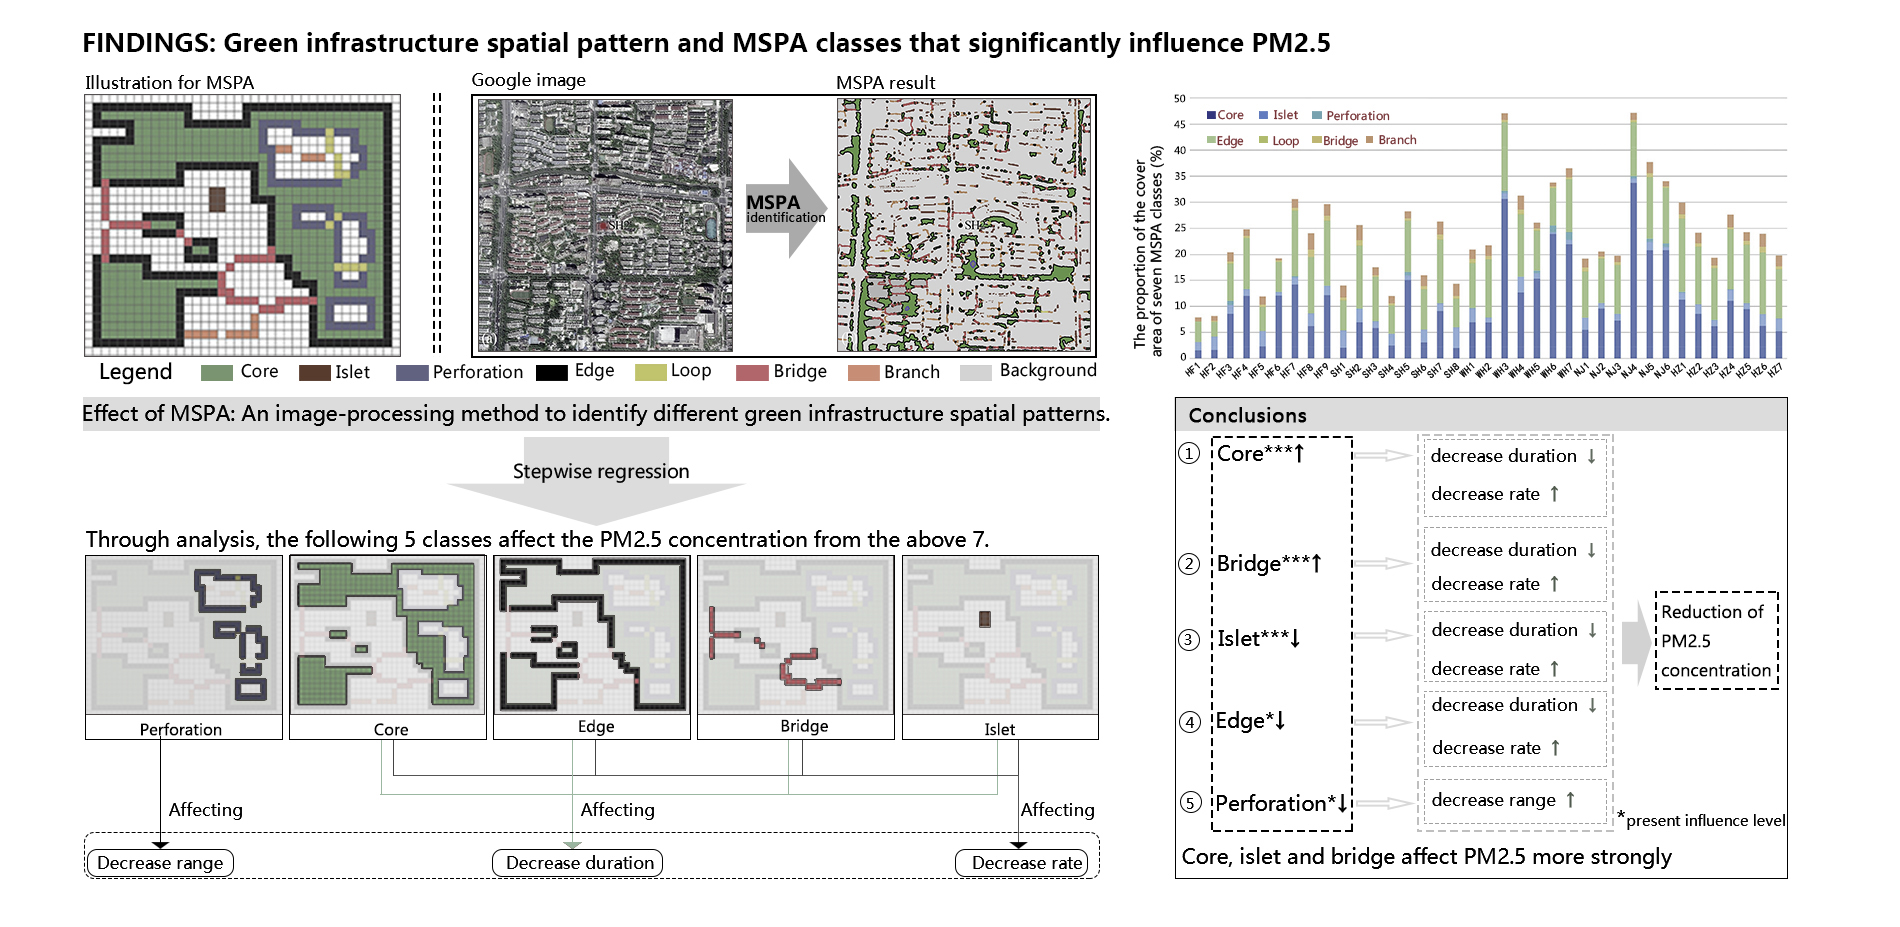 Findings: Green infrastructure spatial pattern and MSPA class that significantly influence PM2.5